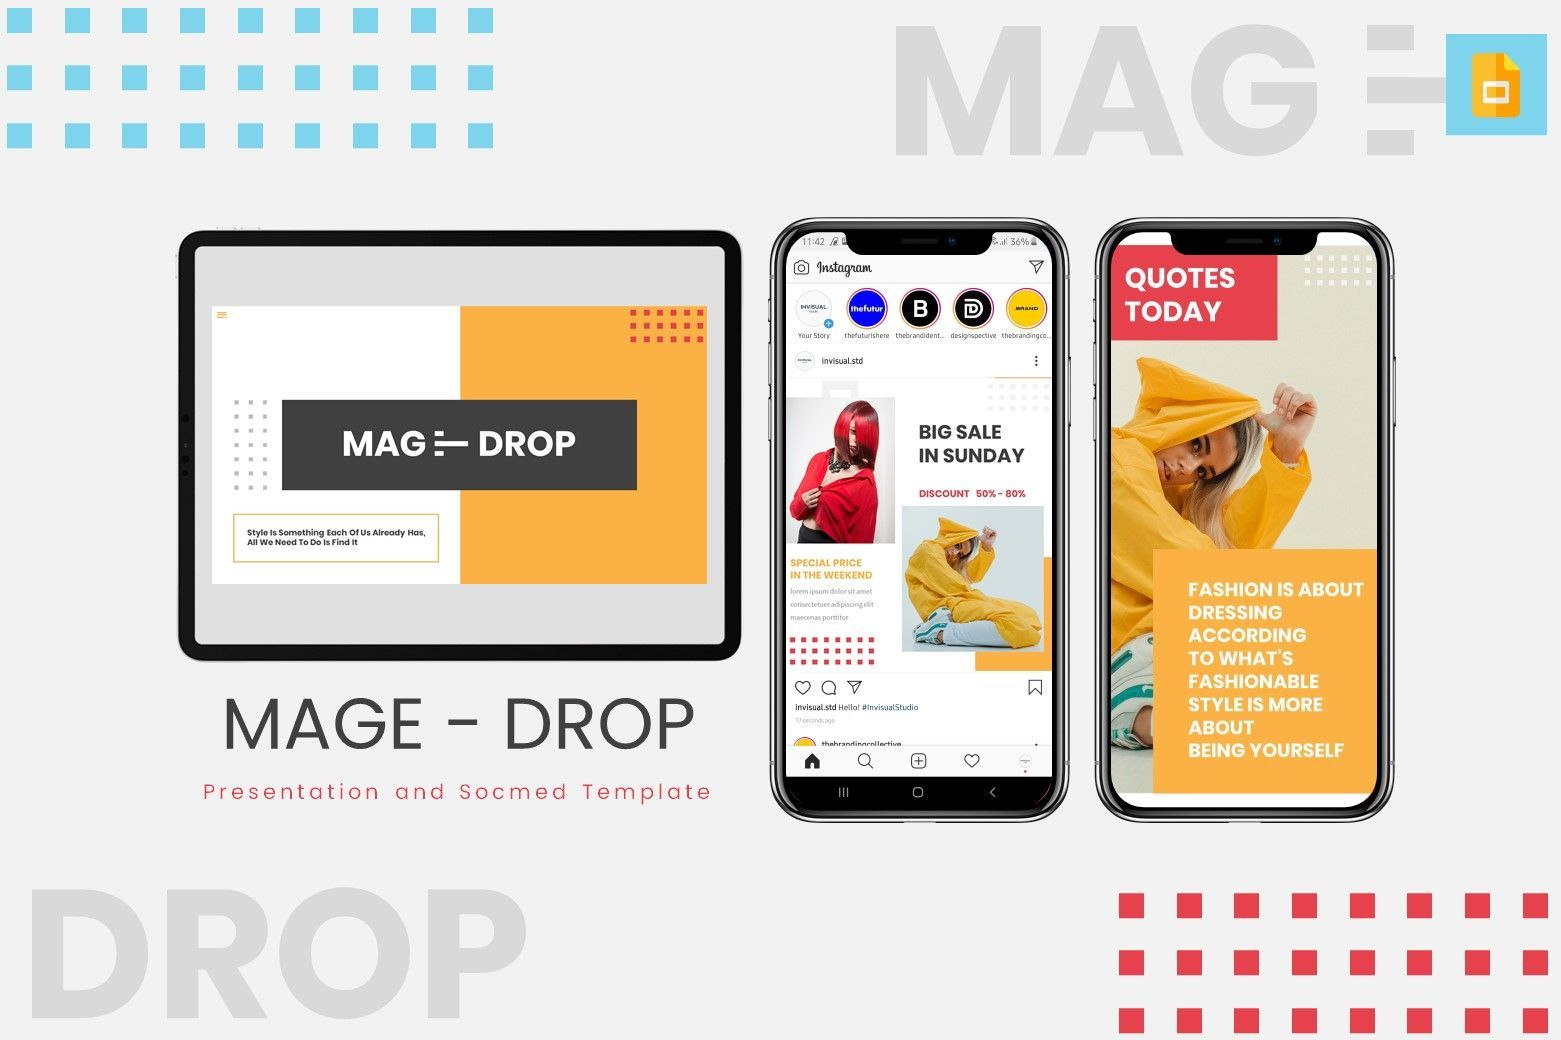 Mage Drop - Google Slides Template, 07997, Presentation Templates — PoweredTemplate.com